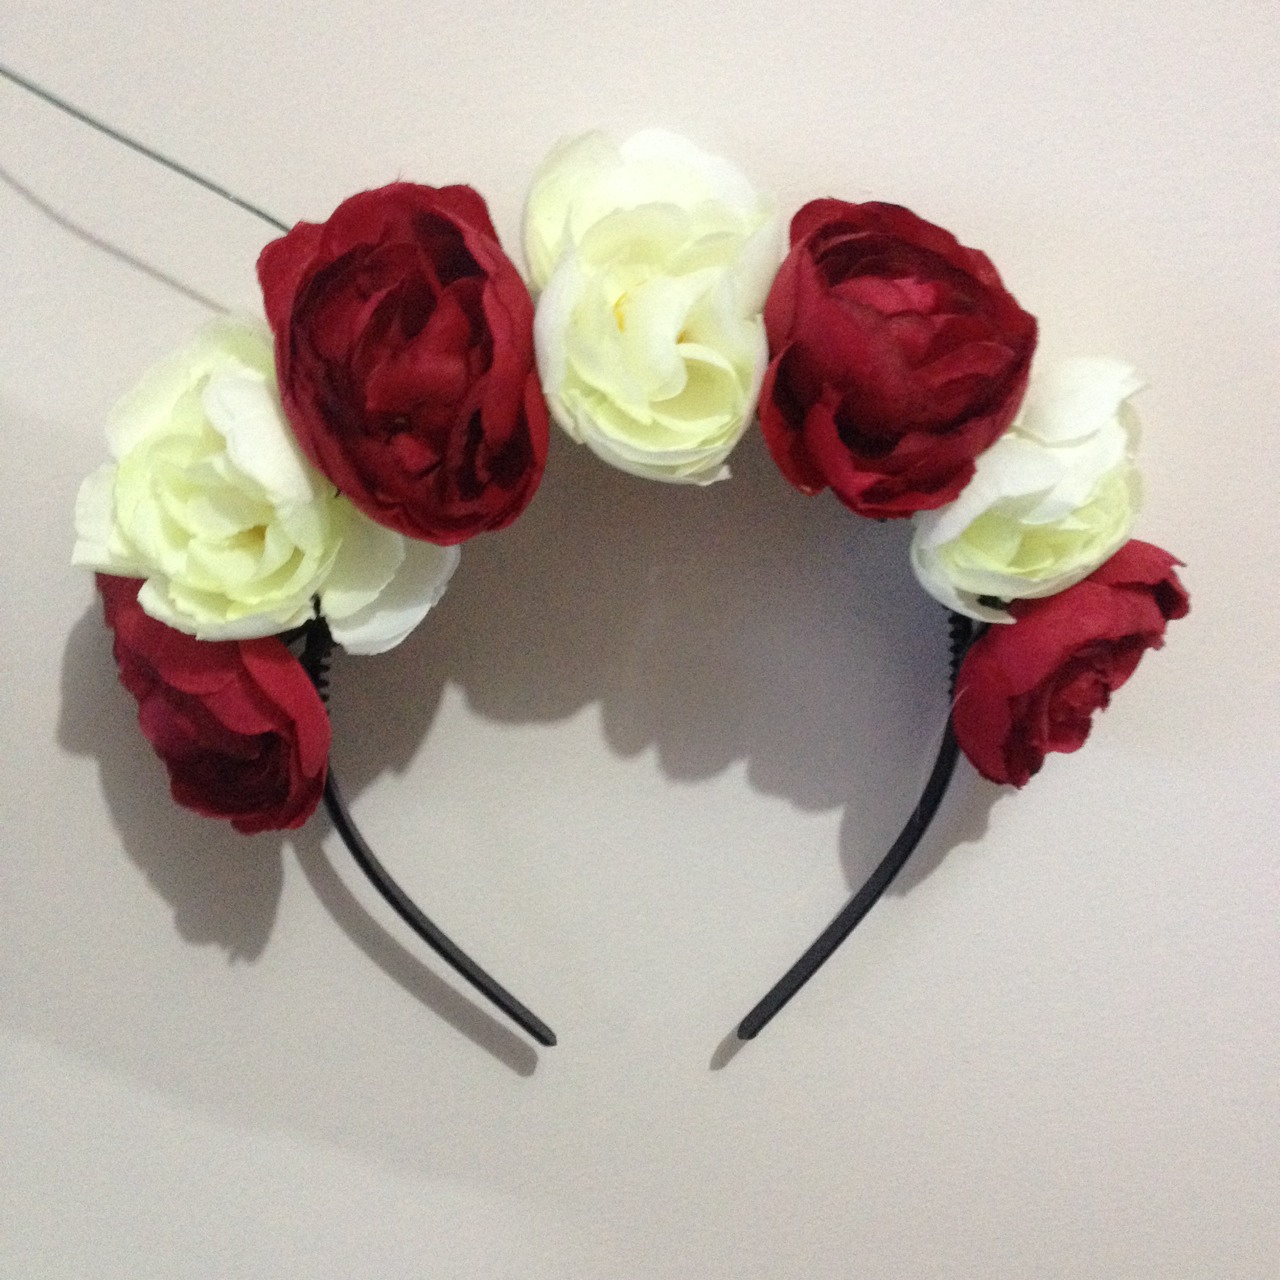 Cream/White and Red Rose Flower Crown · Rixie · Online Store Powered ...